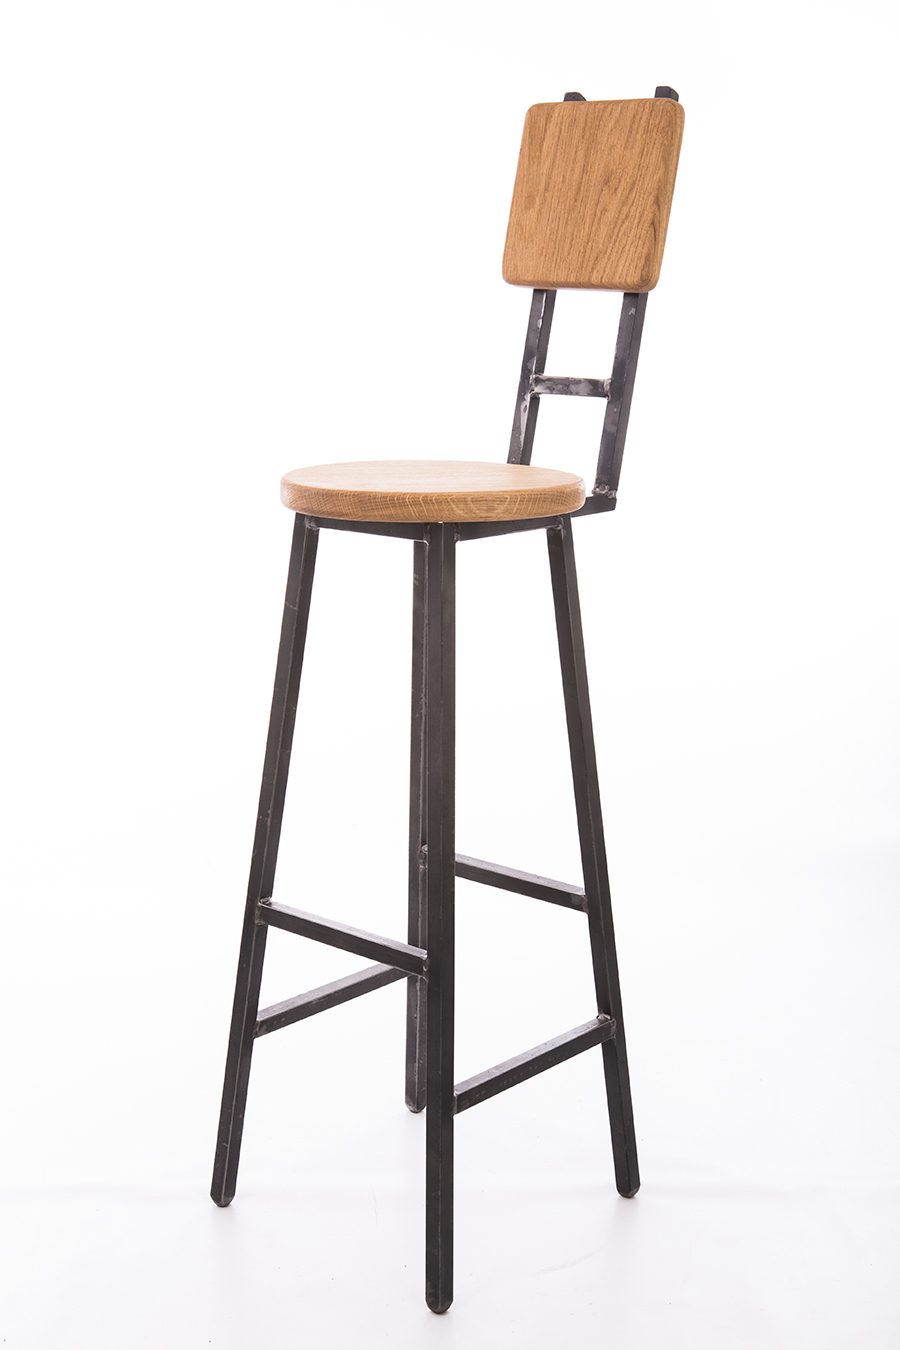 Brian industrial bar stool with two bar back rest